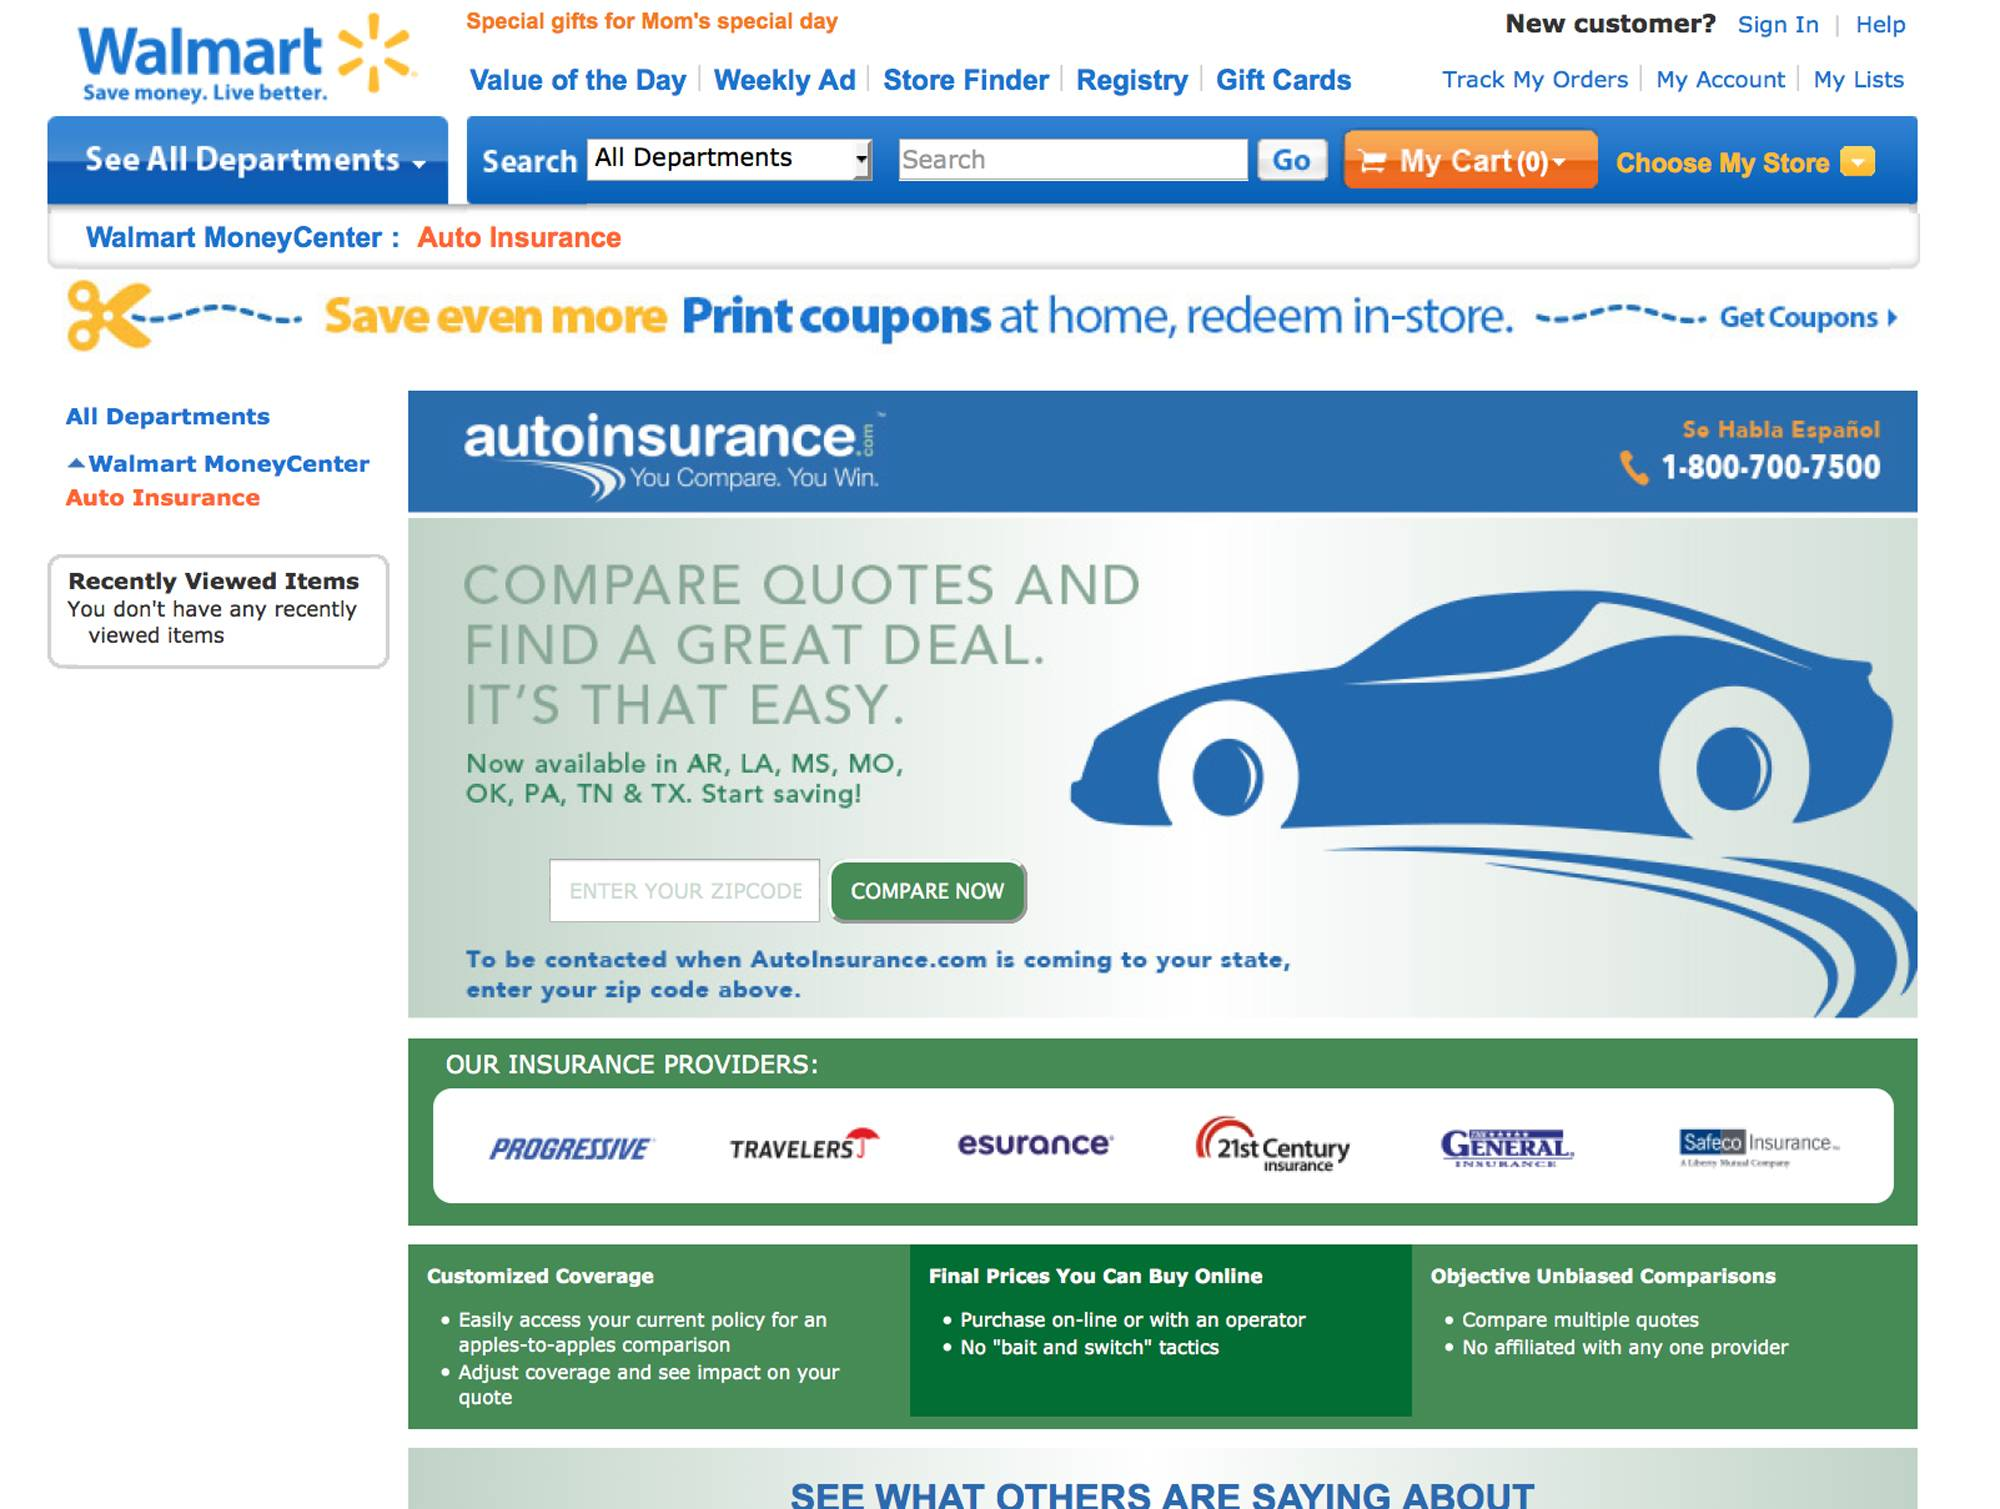 Wal-Mart is bringing one-stop shopping to another area: auto insurance.The world's largest retailer has teamed up with AutoInsurance.com to let shoppers quickly find and buy insurance policies online in real time to cut down costs.